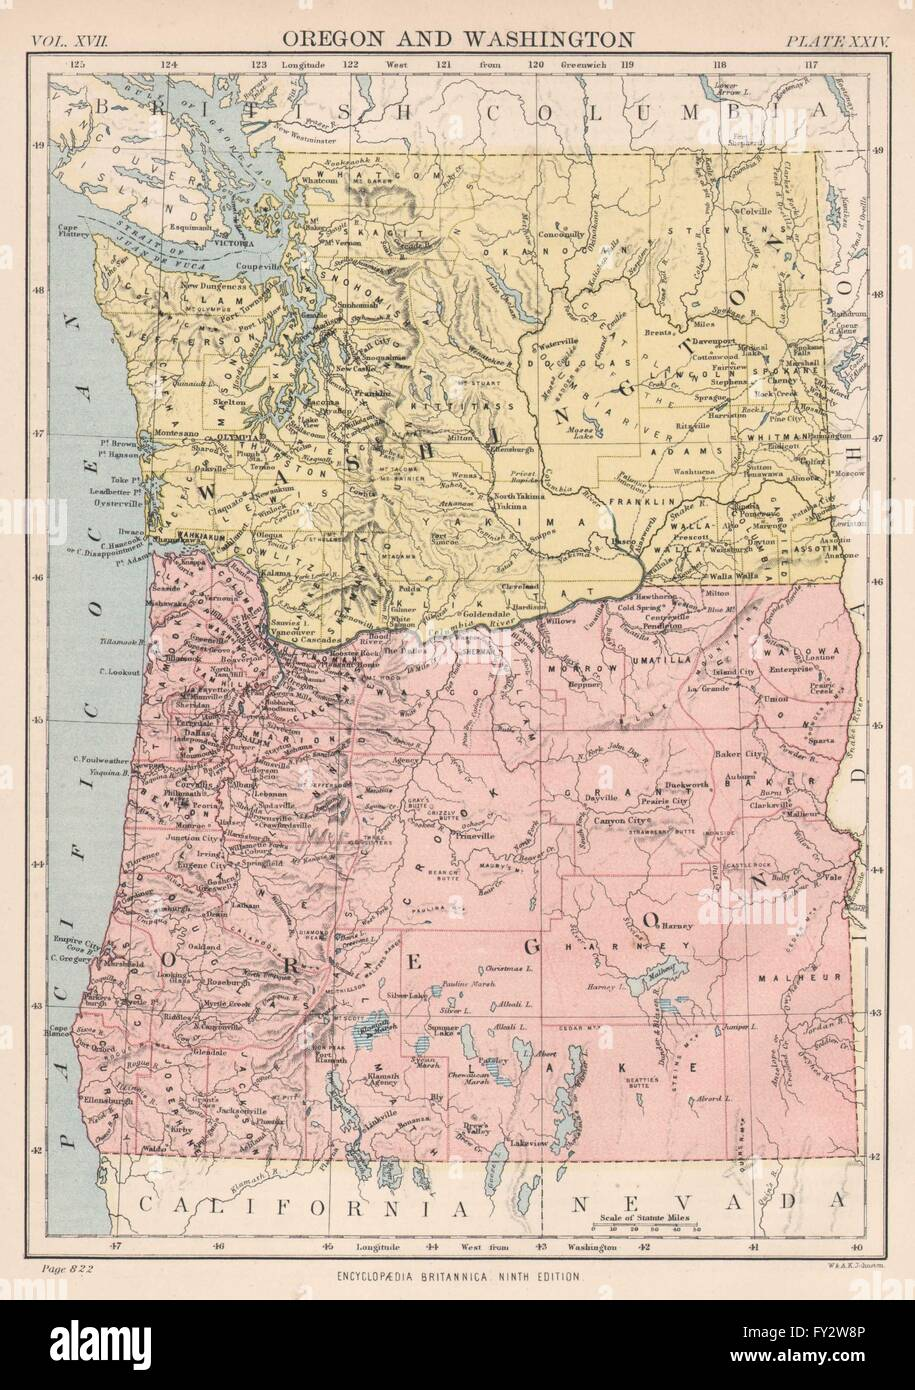 OREGON WASHINGTON State Map Showing Counties Seattle Tacoma - Map of oregon and washington